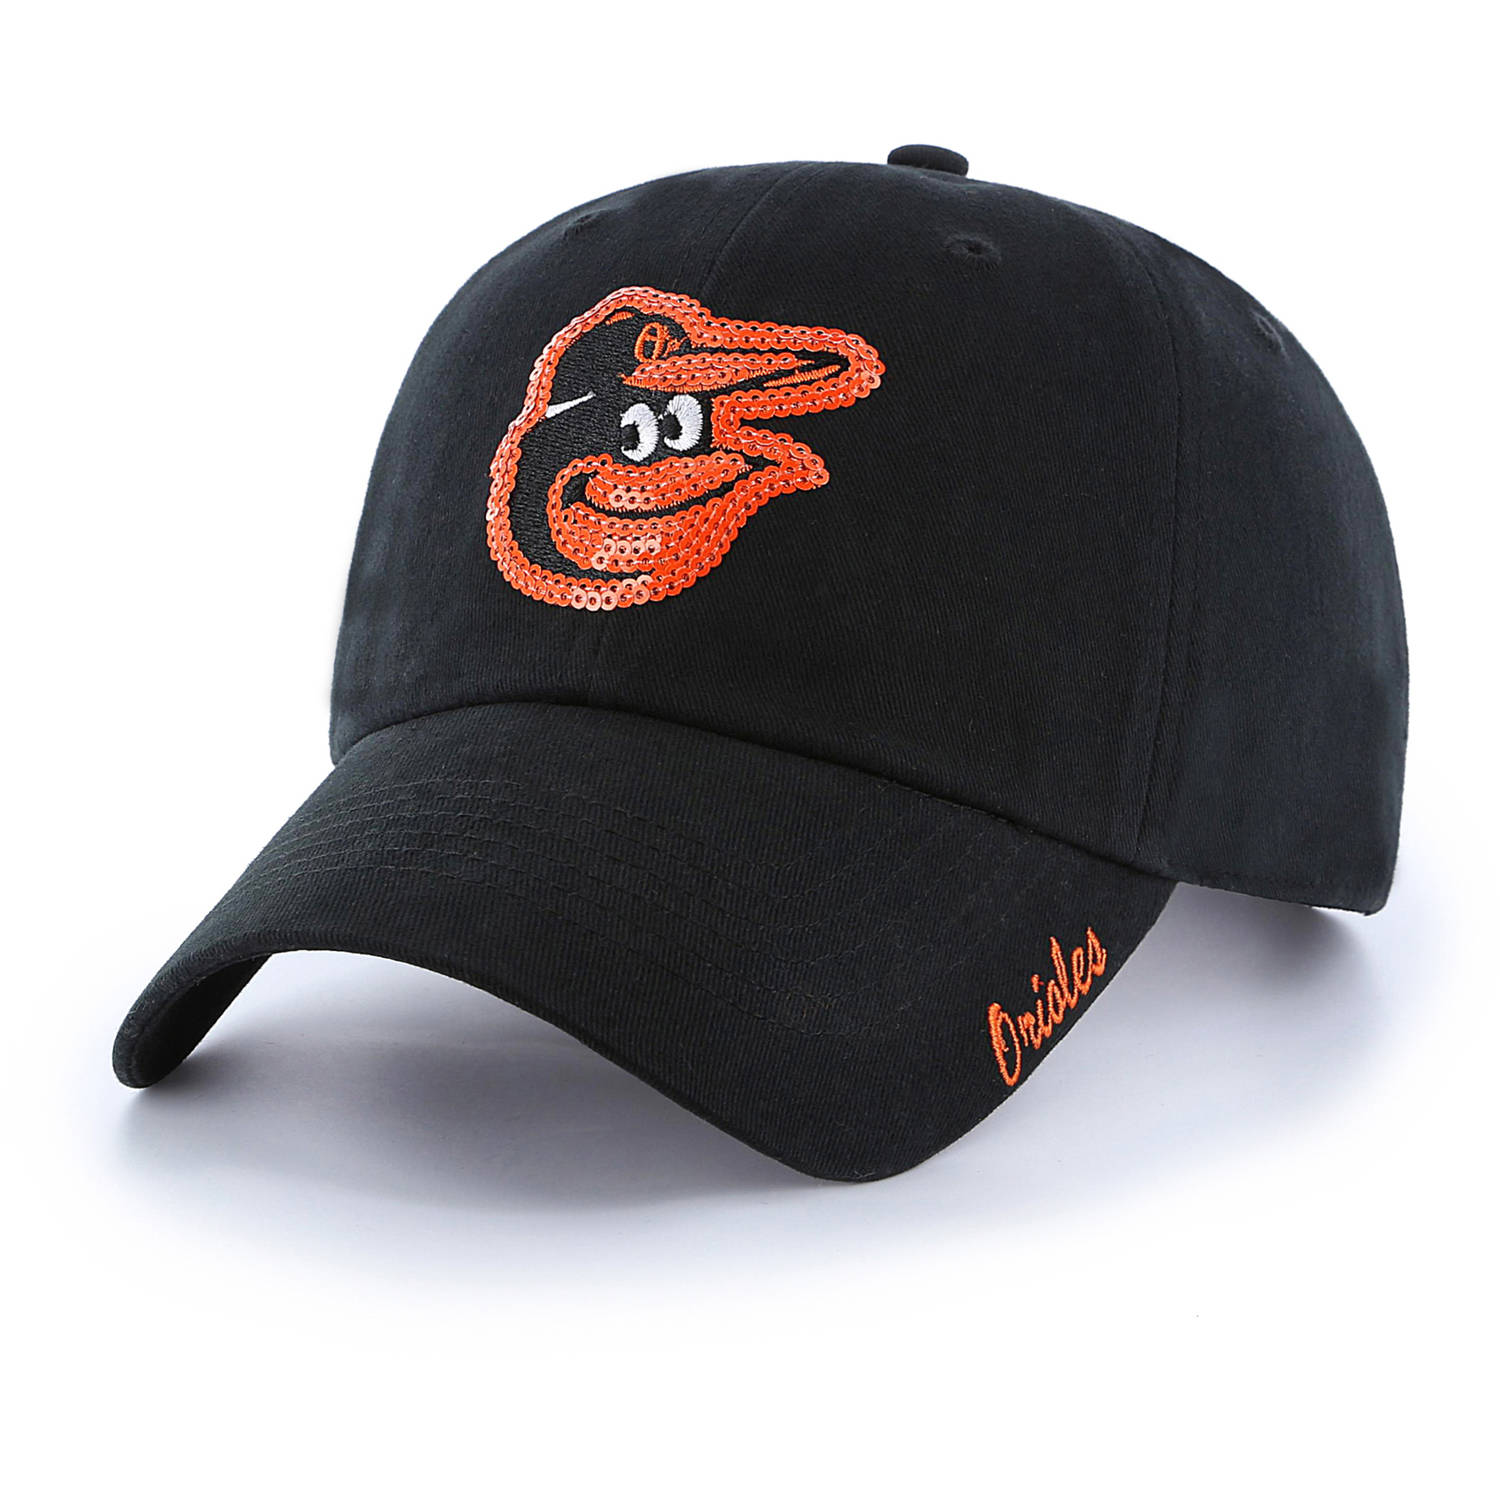 MLB Baltimore Orioles Sparkle Women's Adjustable Cap Hat by Fan Favorite by Overstock